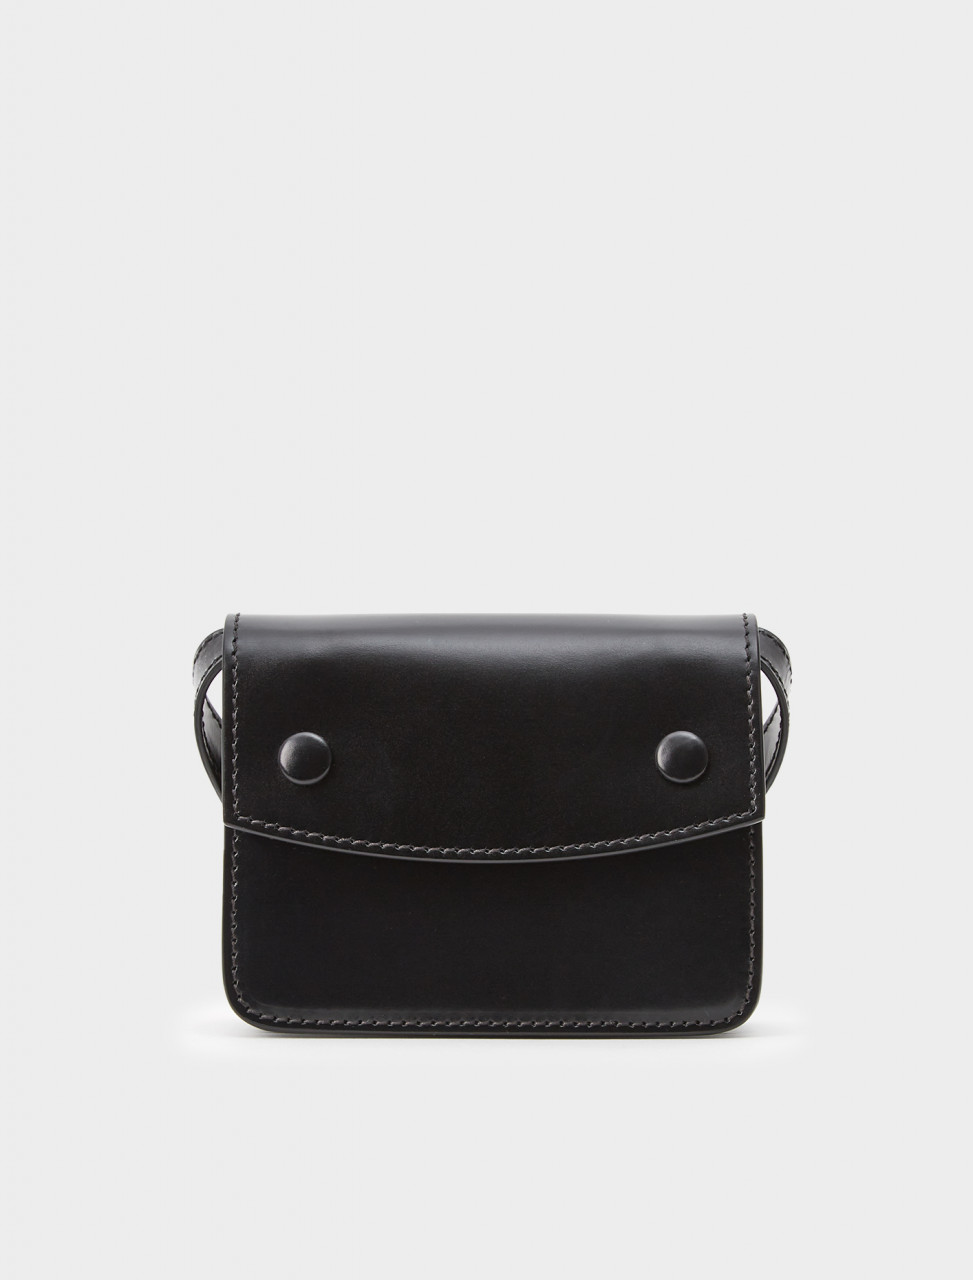 256-S35WB0077-PR516-T8013 MAISON MARGIELA LEATHER BELT BAG BLACK